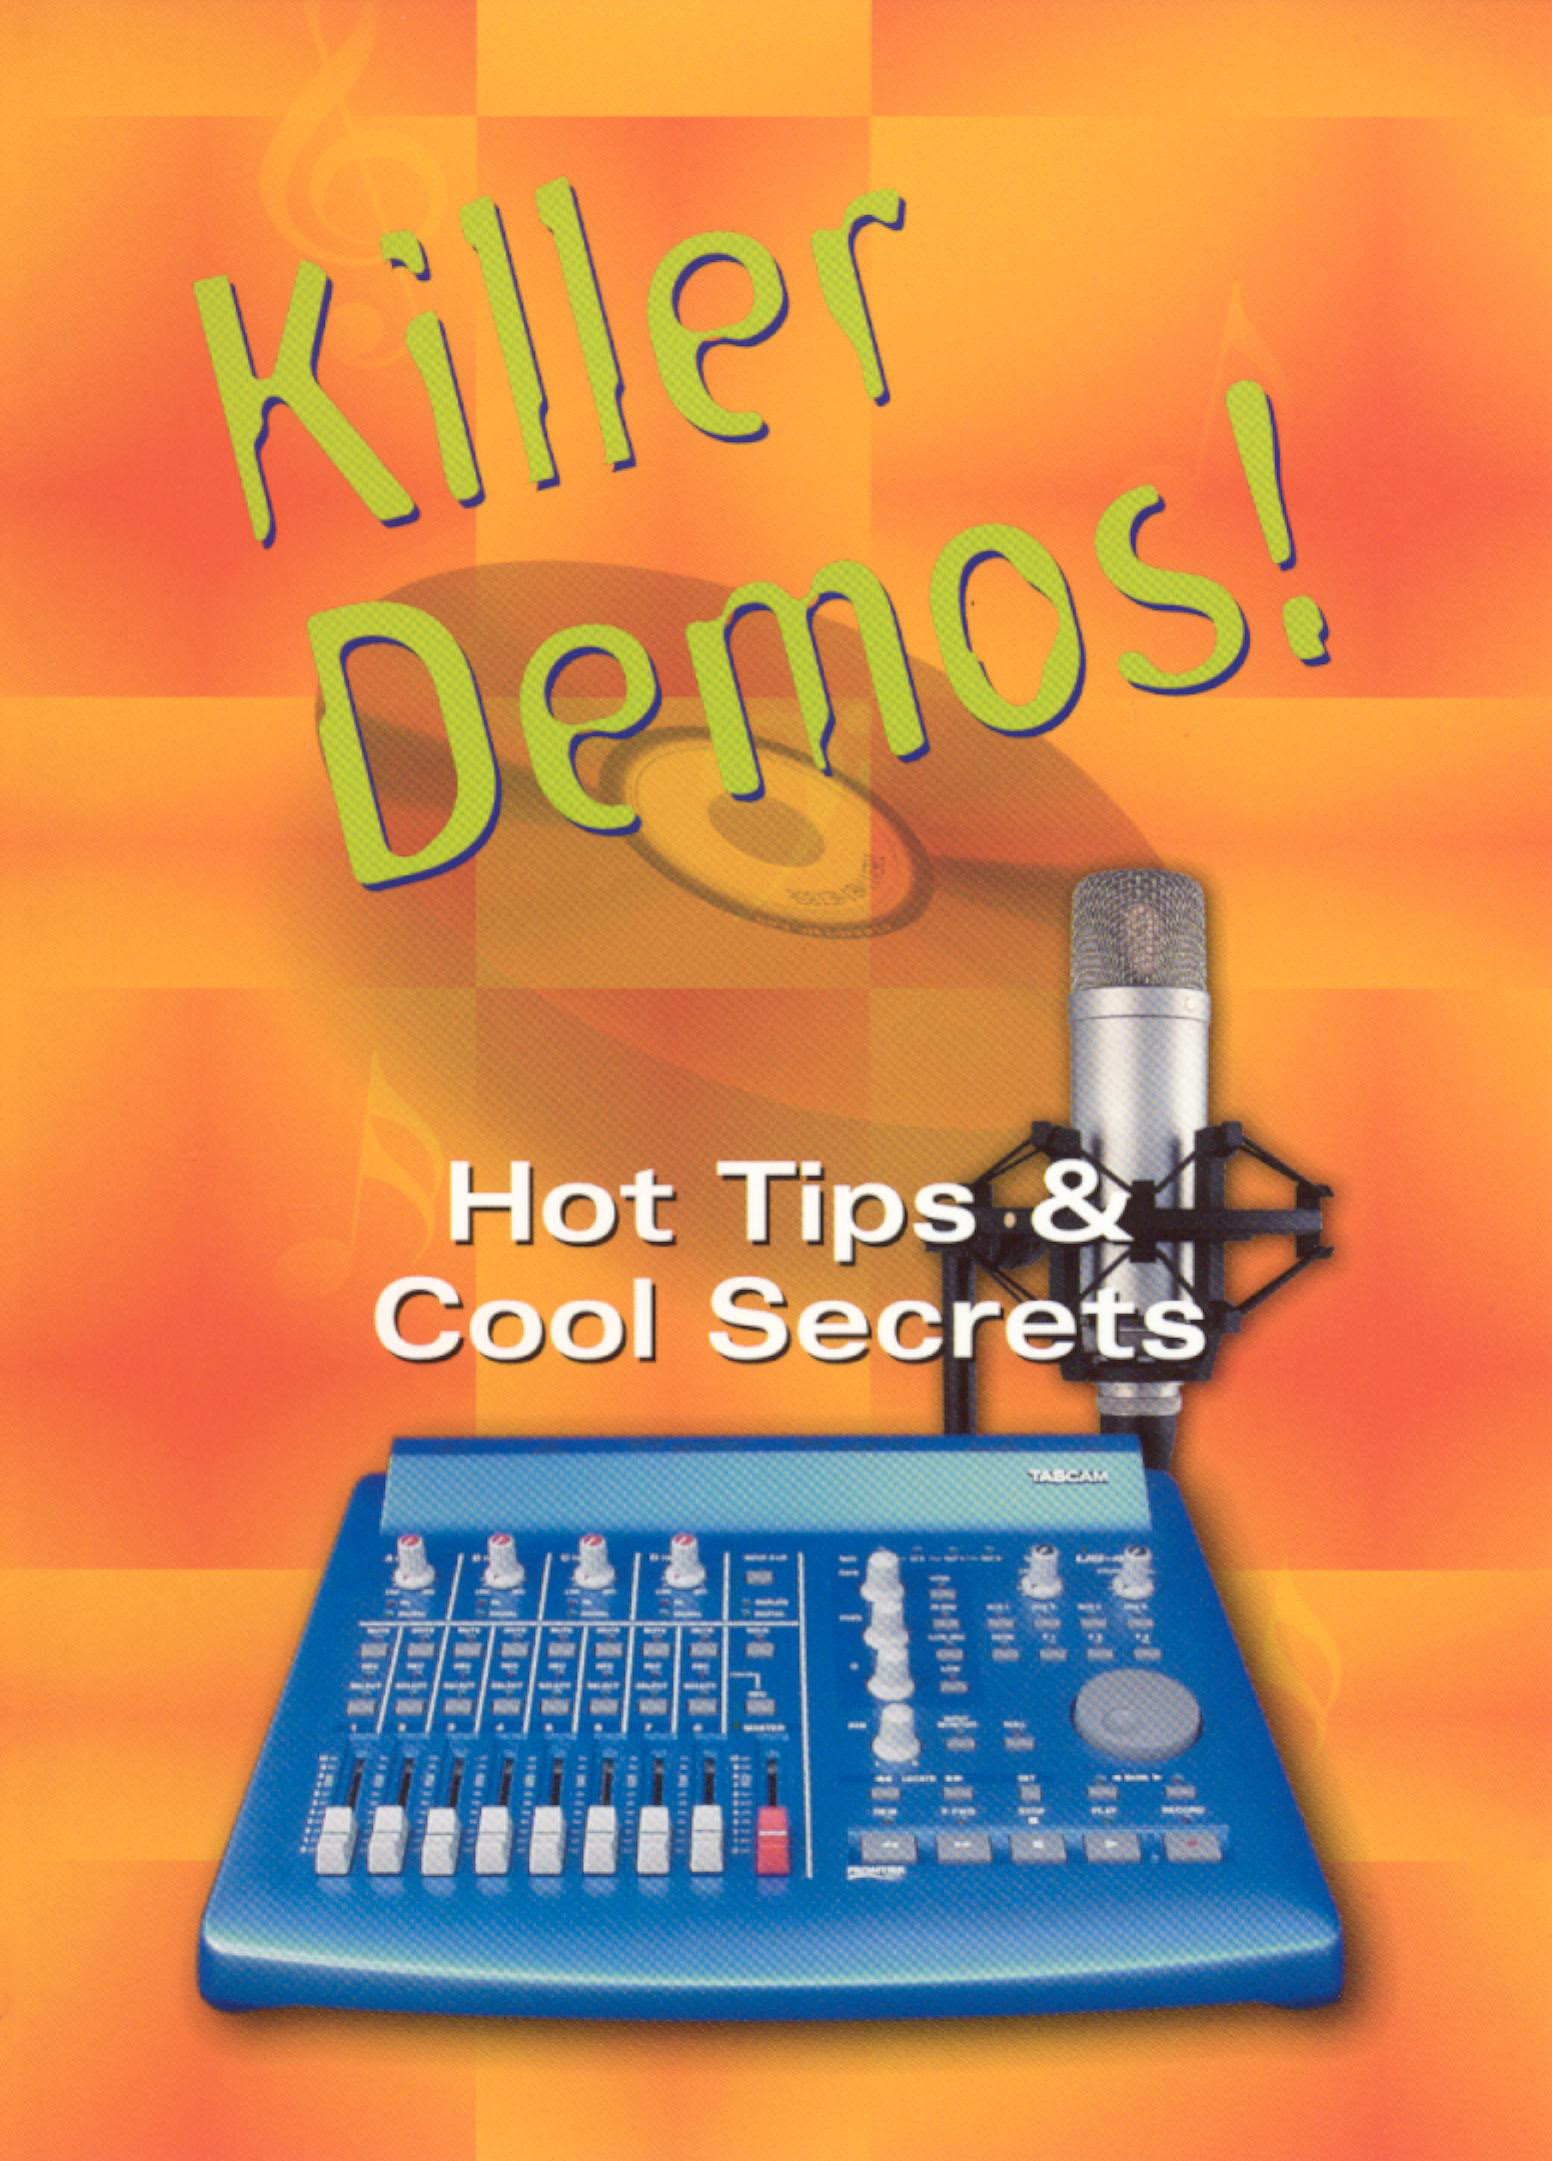 Killer Demos: Hot Tips & Cool Secrets